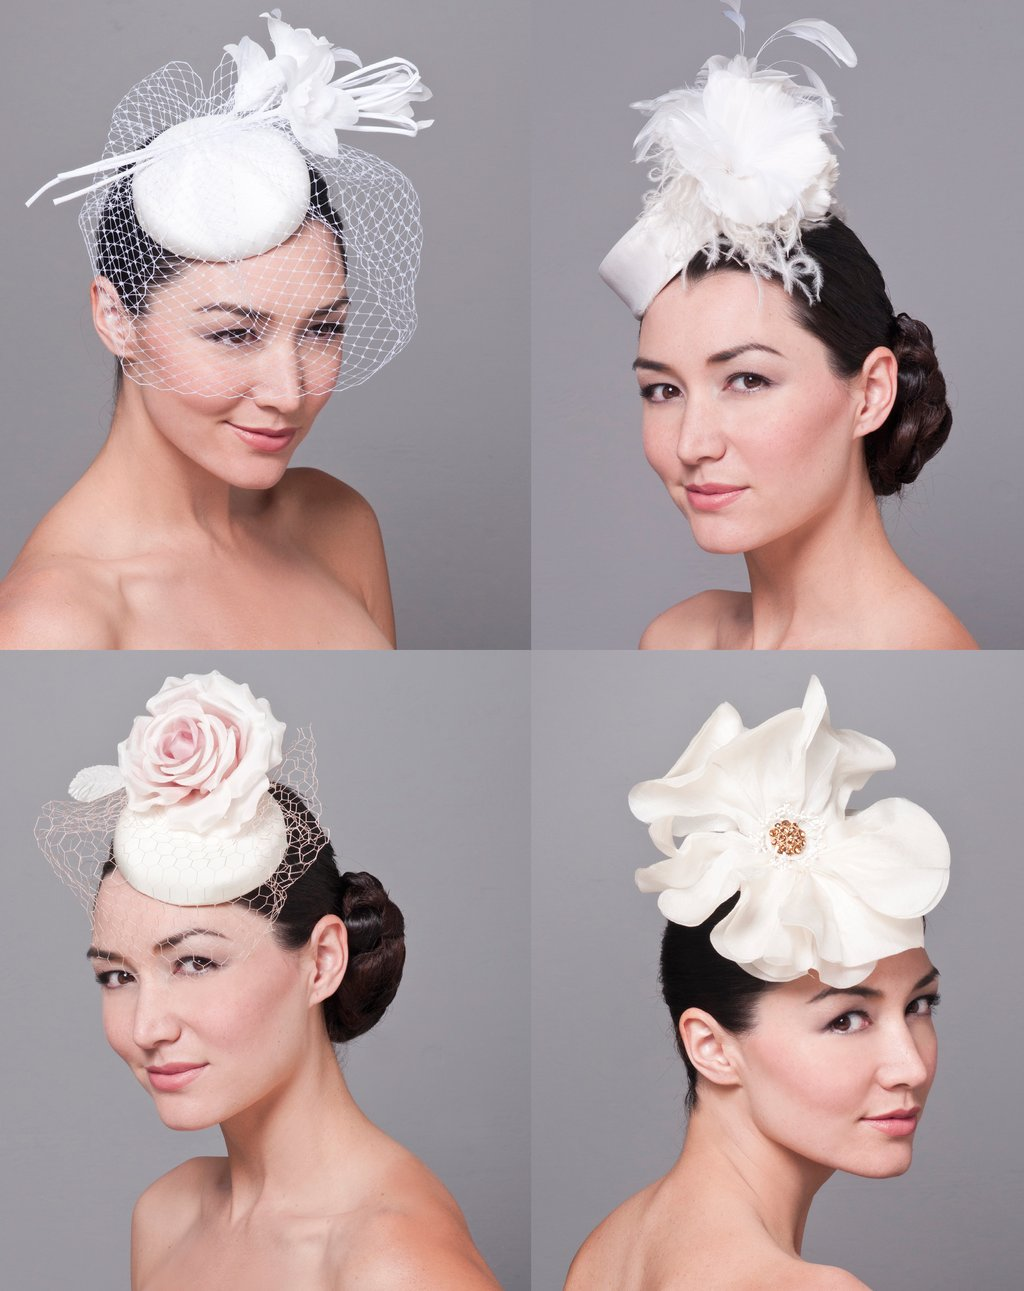 Royal wedding-inspired wedding hats and bridal fascinators 86604ff4c5c